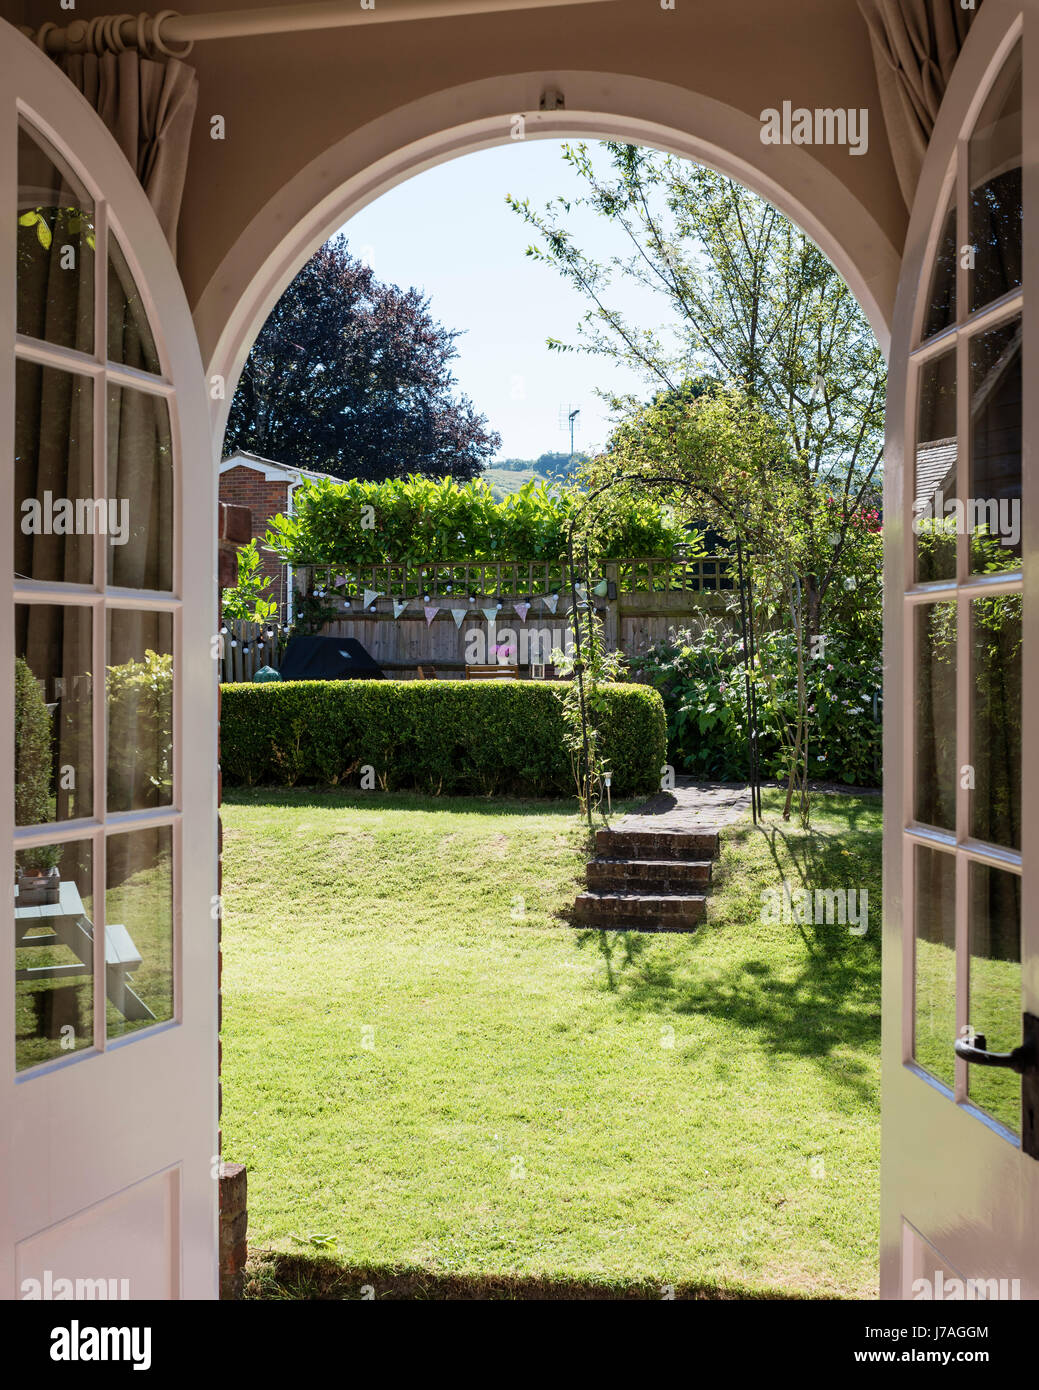 View through arched french doors to small country garden - Stock Image